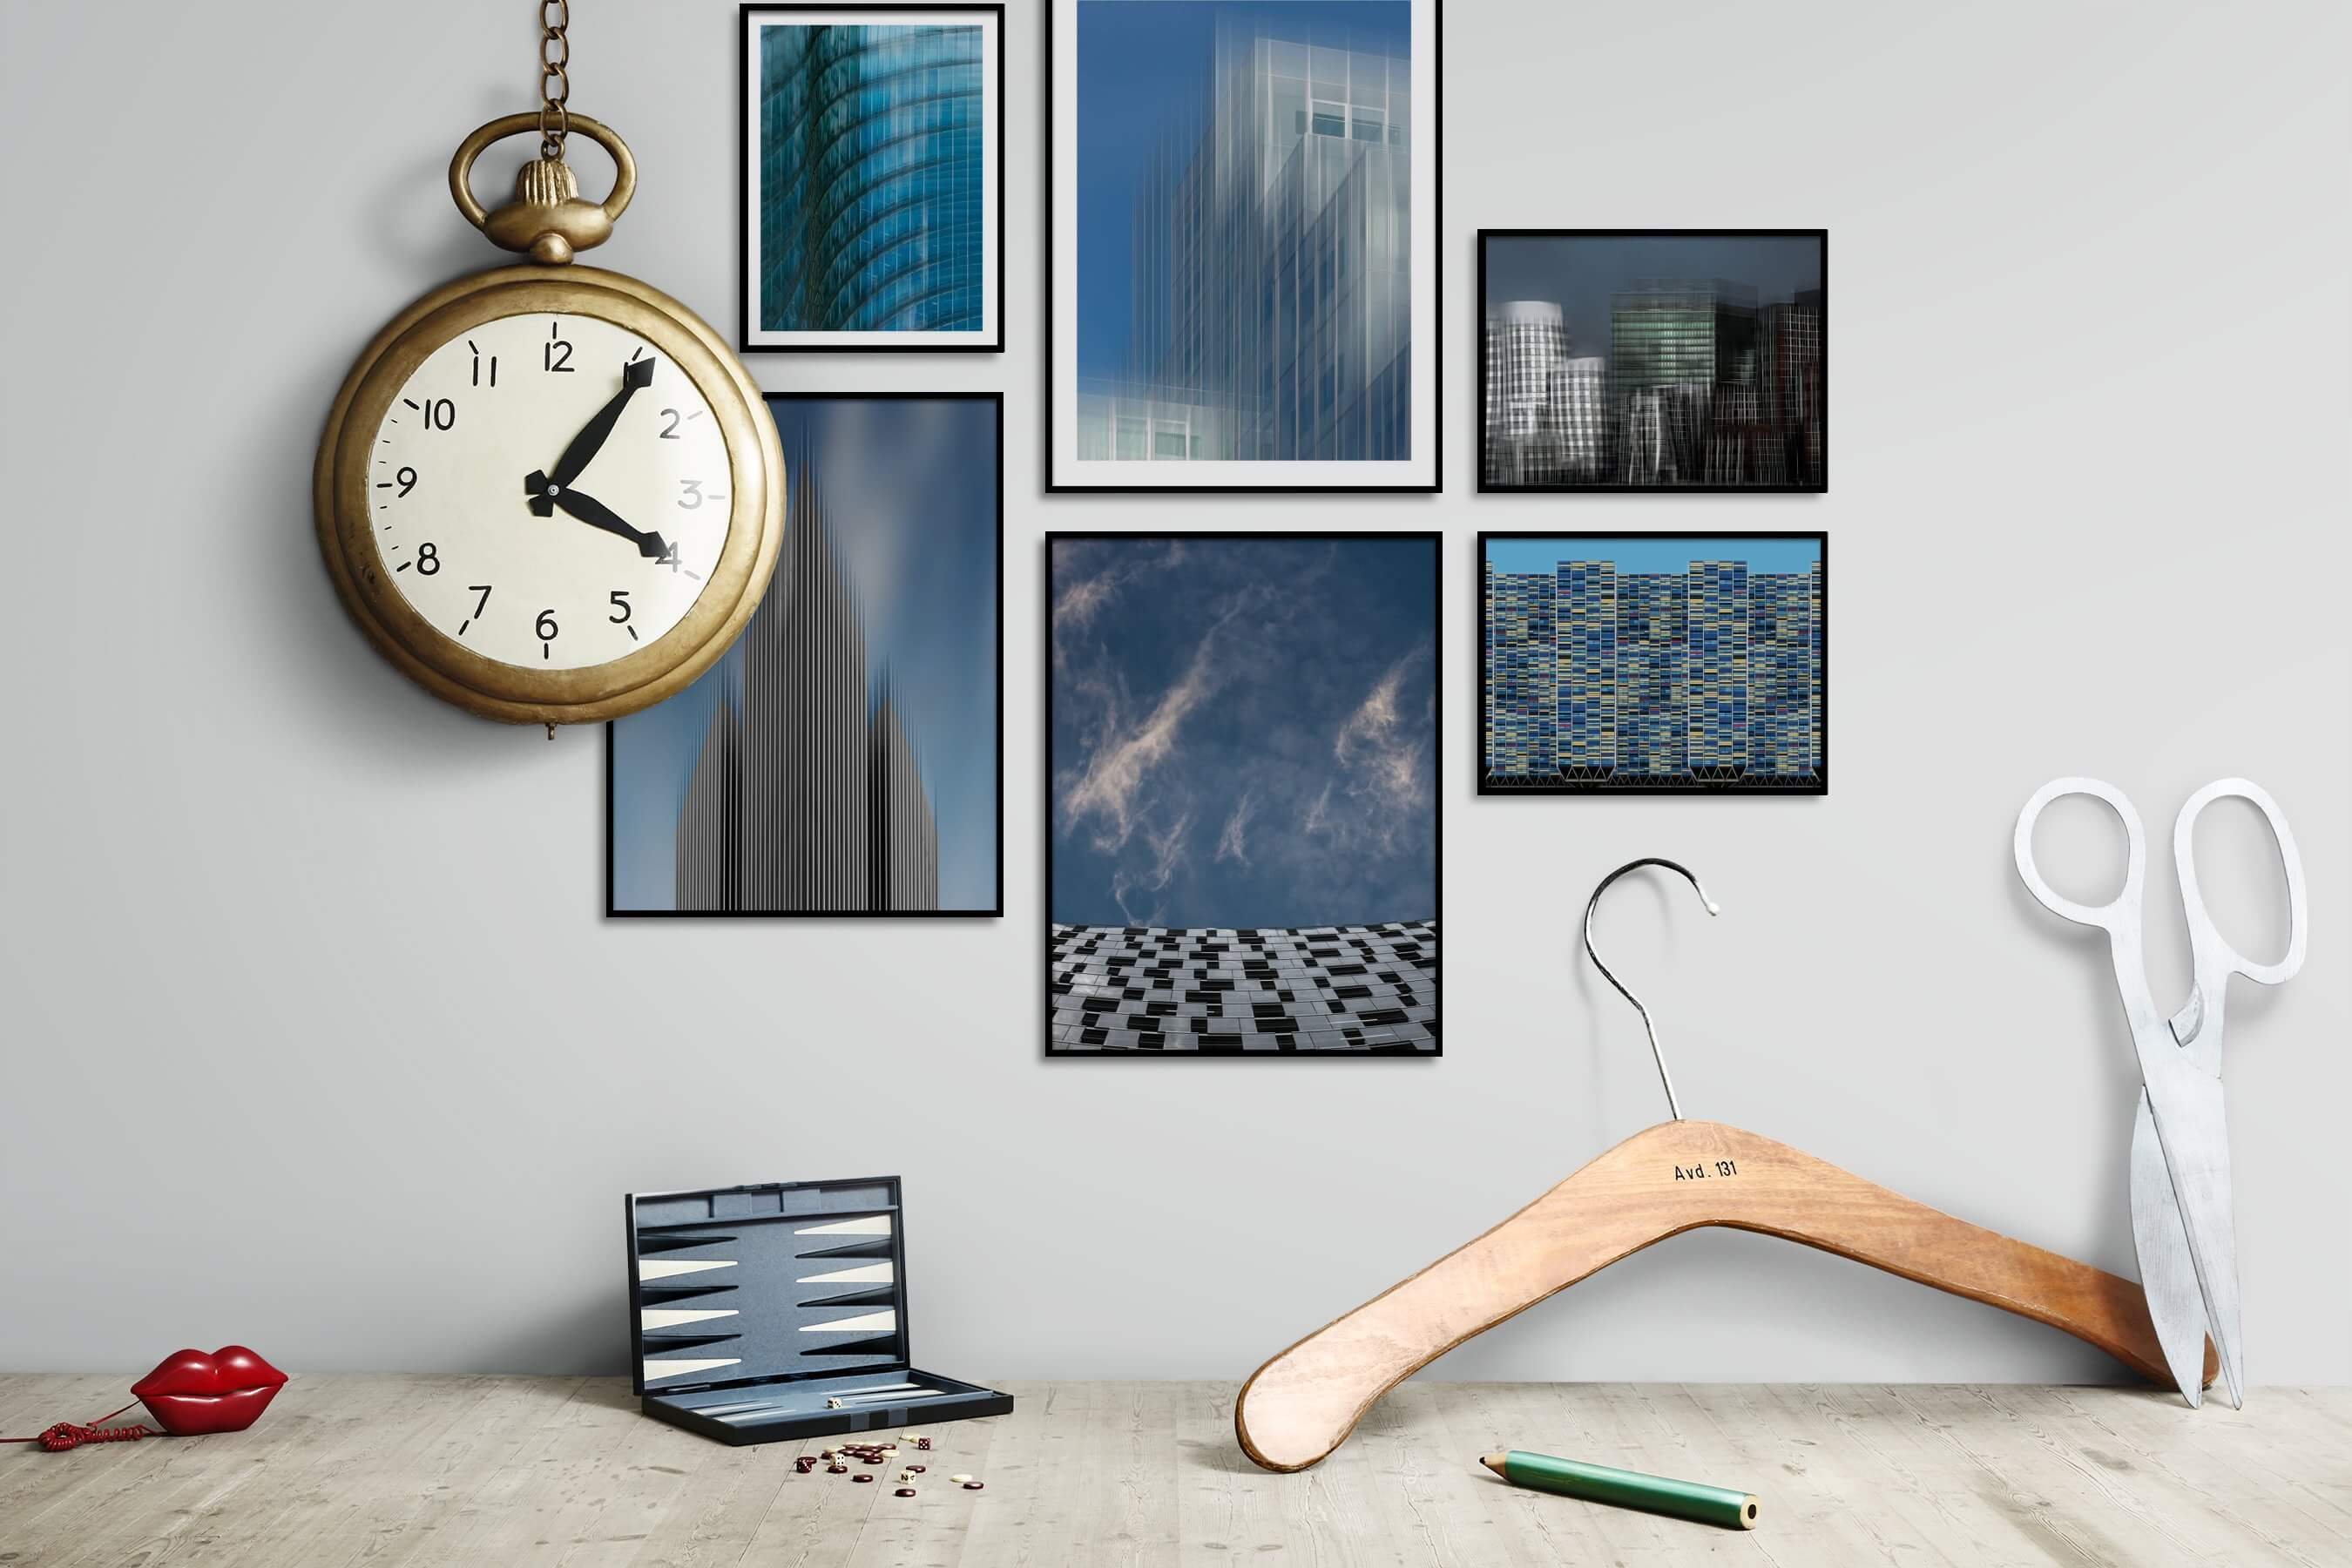 Gallery wall idea with six framed pictures arranged on a wall depicting For the Maximalist, For the Moderate, City Life, and For the Minimalist